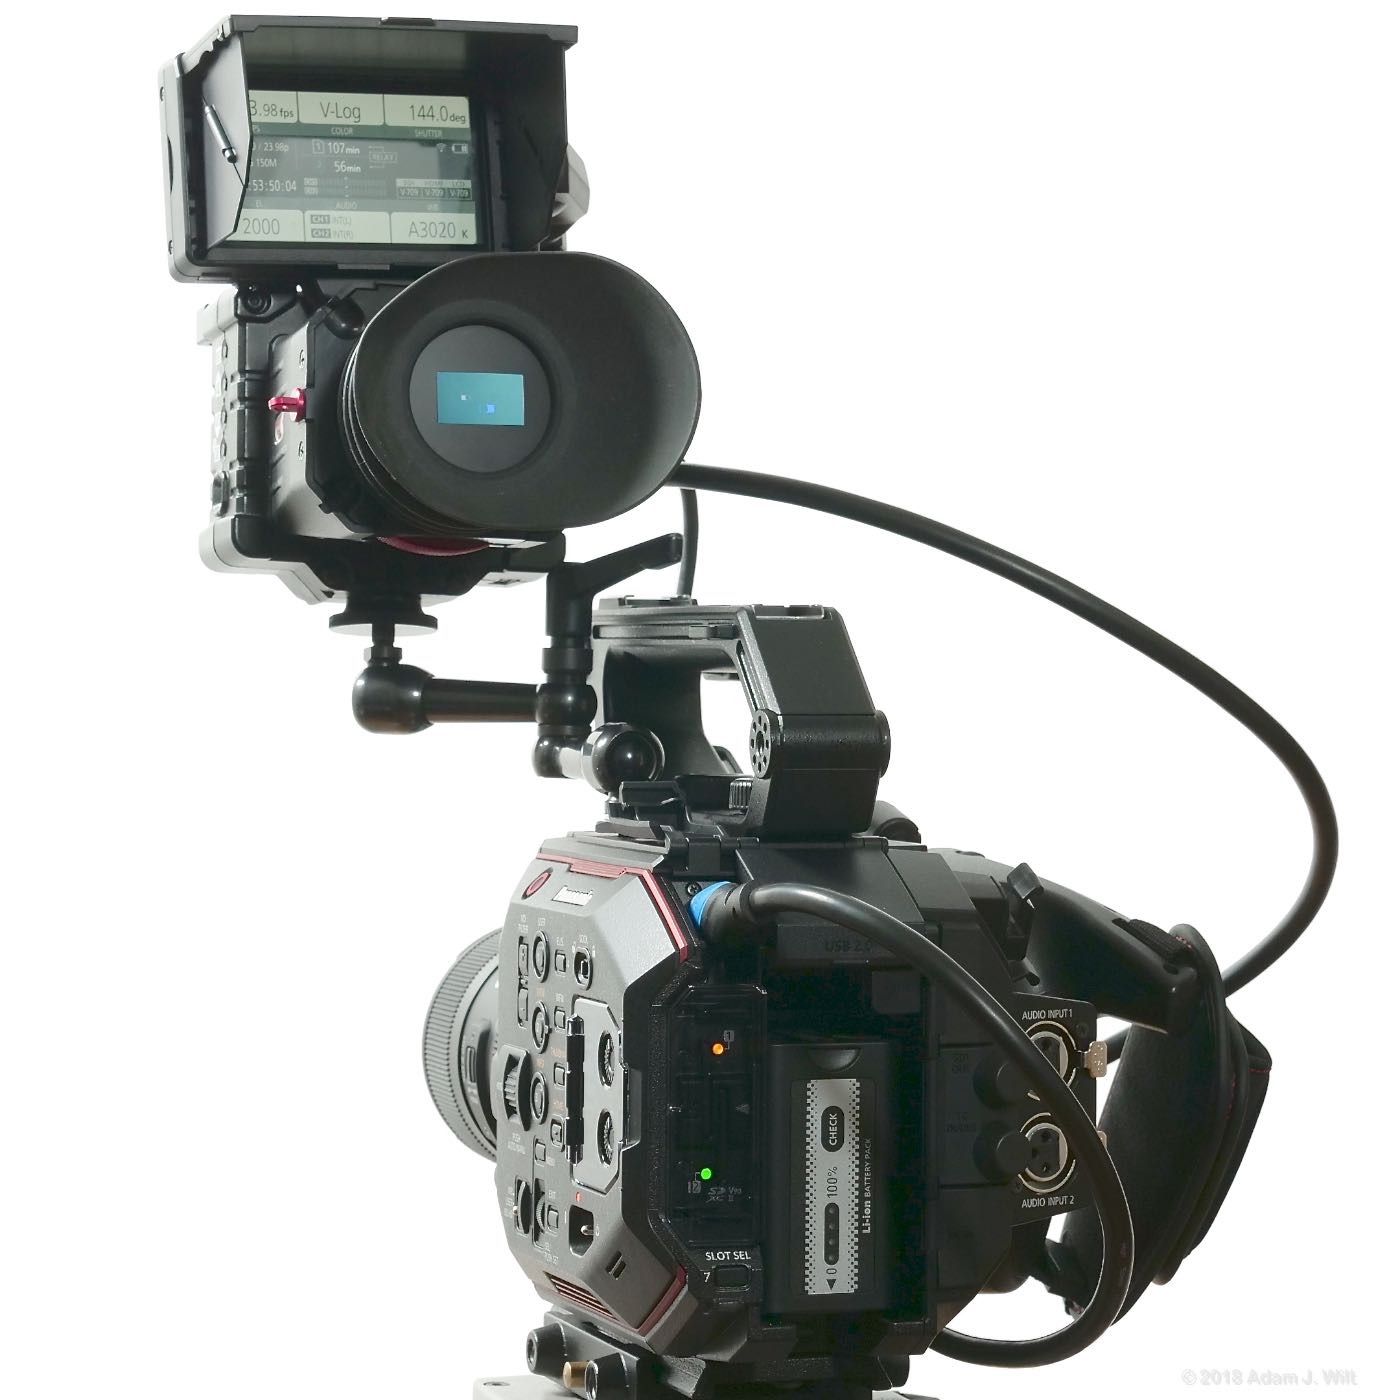 LCD monitor mounted on Zacuto EVF